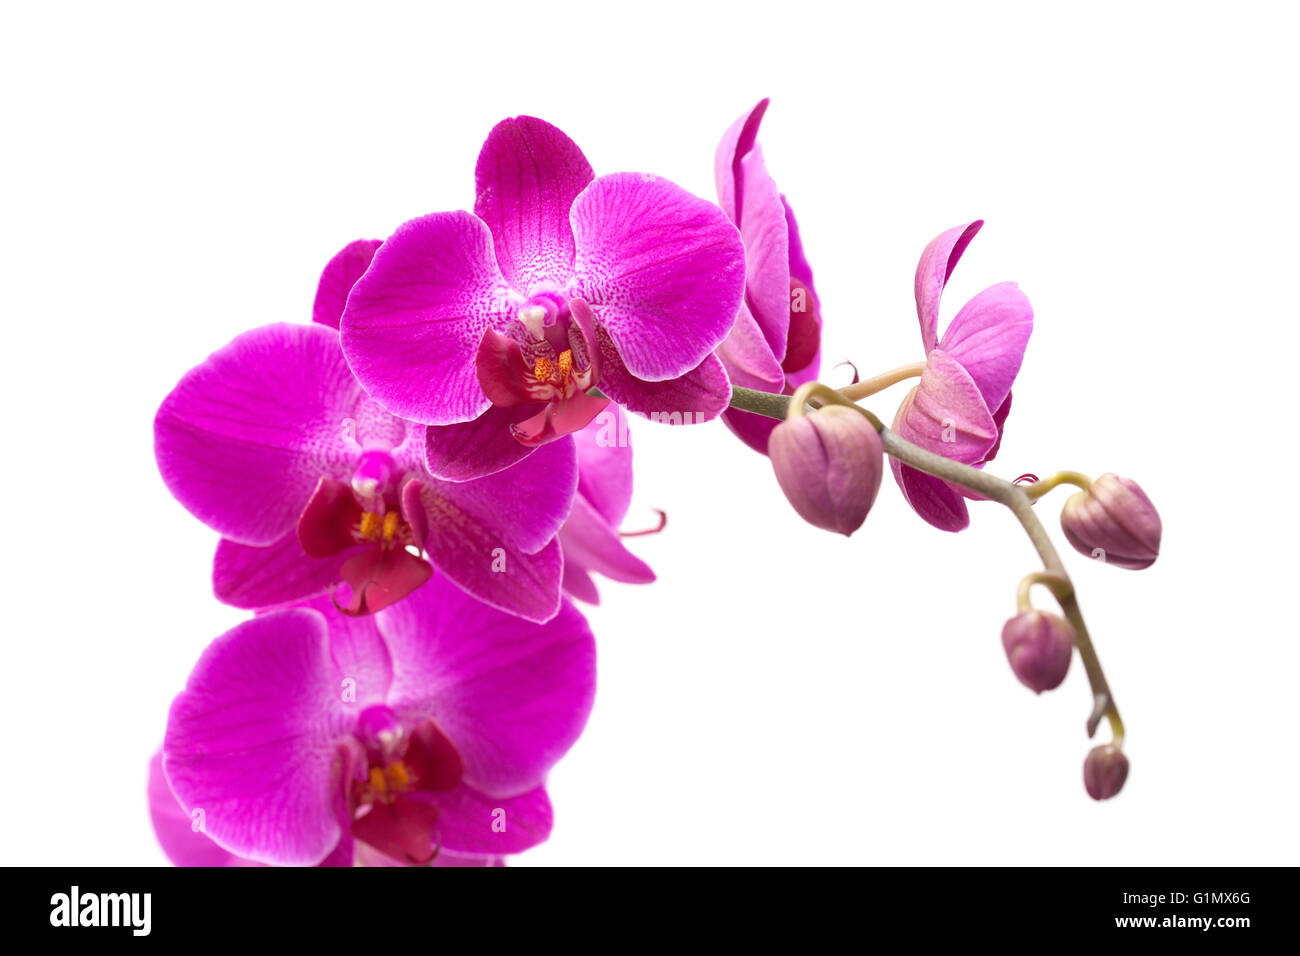 abundant flowering of magenta phalaenopsis orchid isolated on white - Stock Image